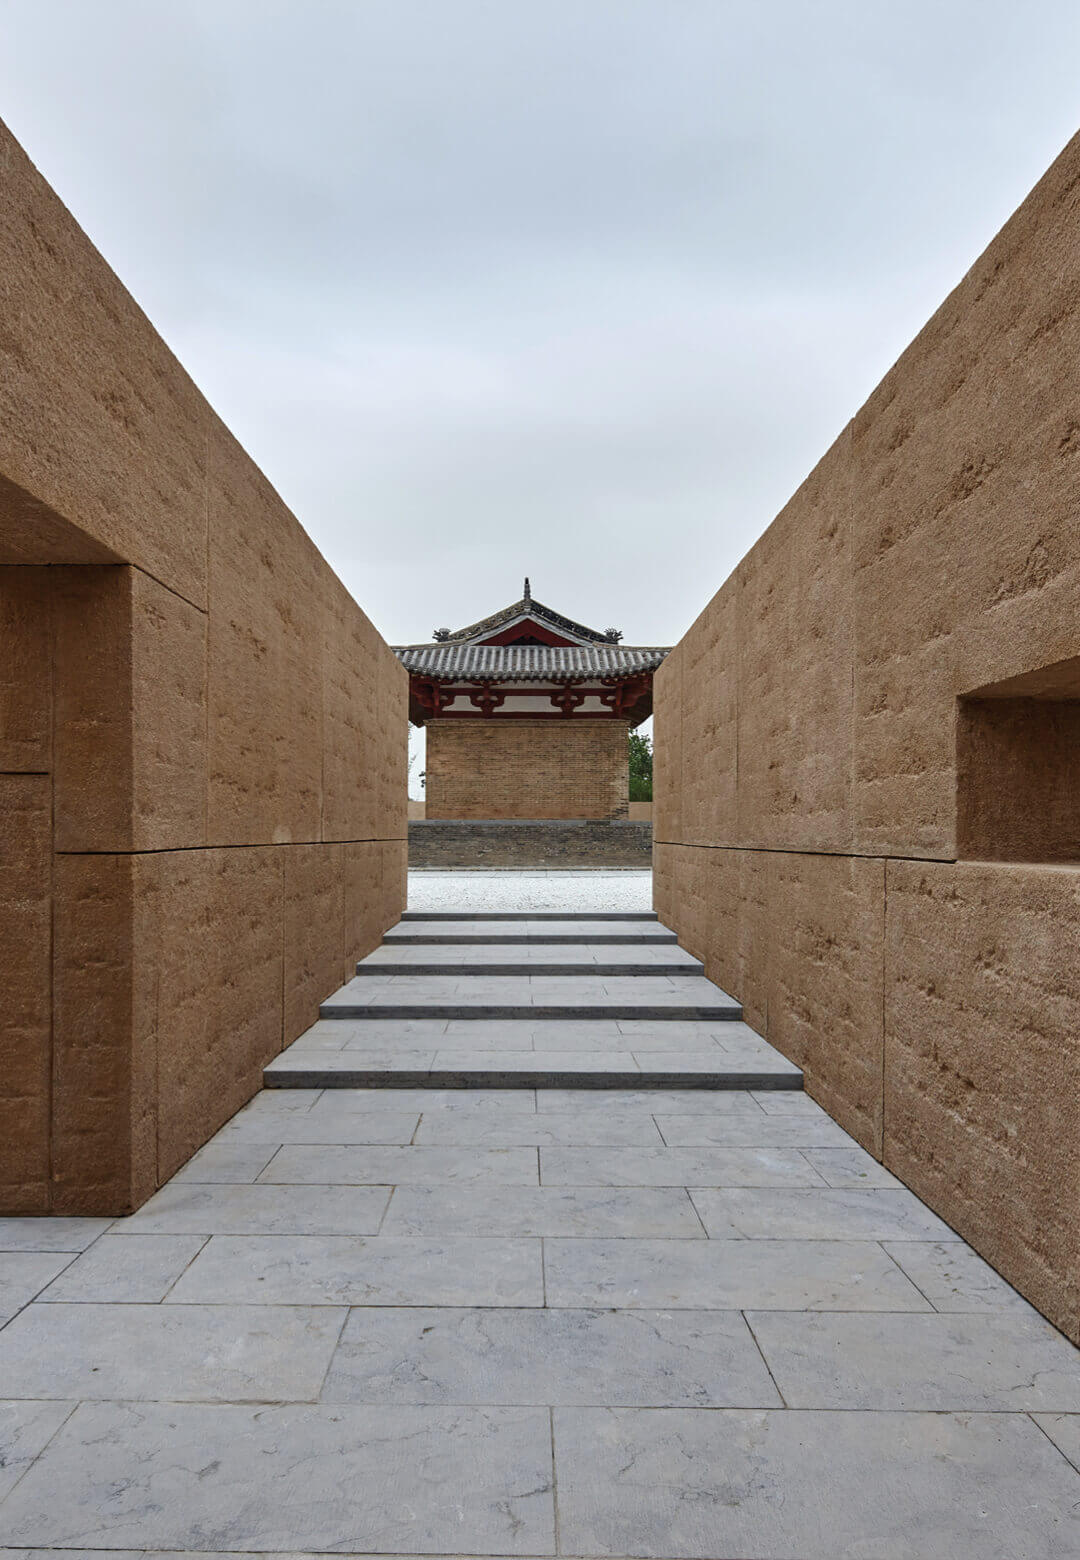 Five Dragons Temple in Shanxi province, China | Weili Zhang visits Environmental Upgrade of Five Dragons Temple | STIRworld